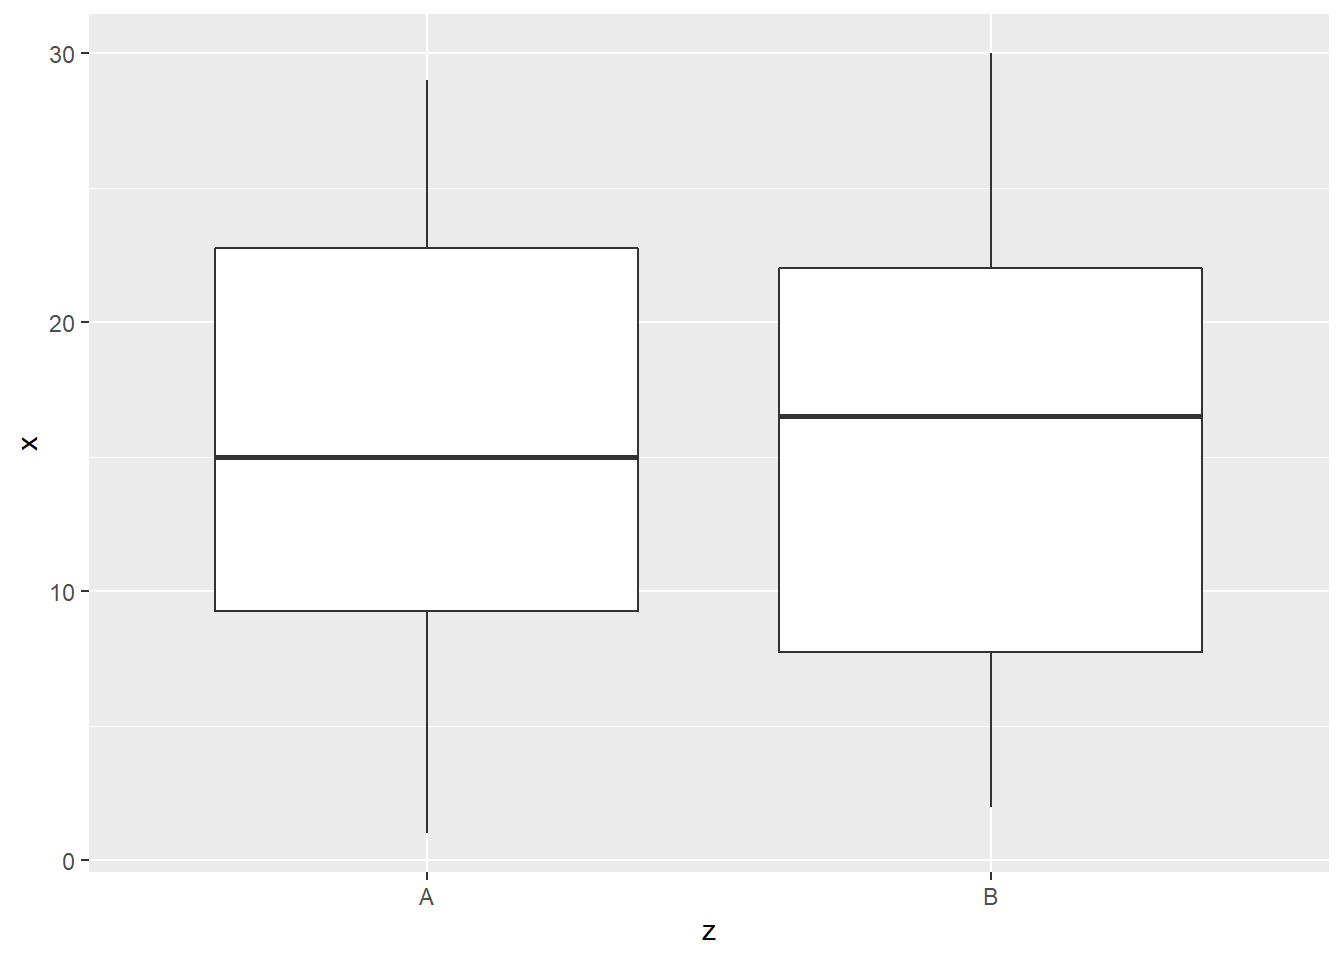 3 1 ggplot2 package | Techincal Analysis with R